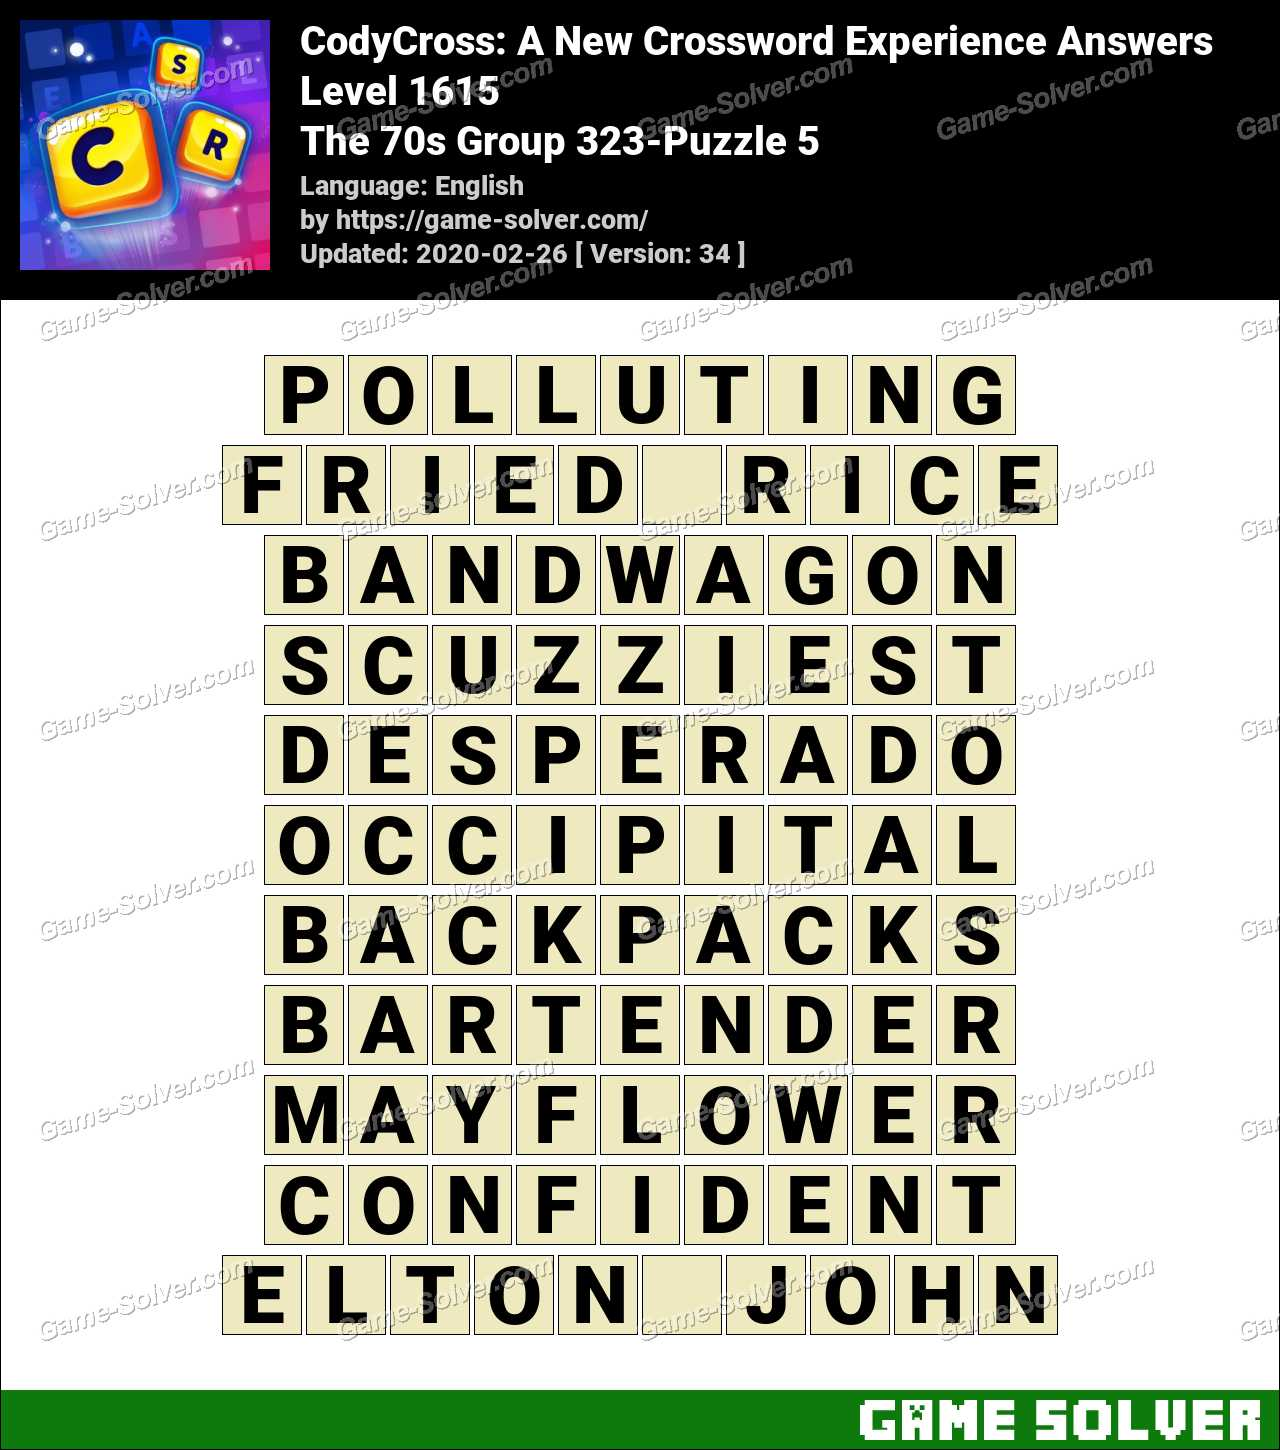 CodyCross The 70s Group 323-Puzzle 5 Answers